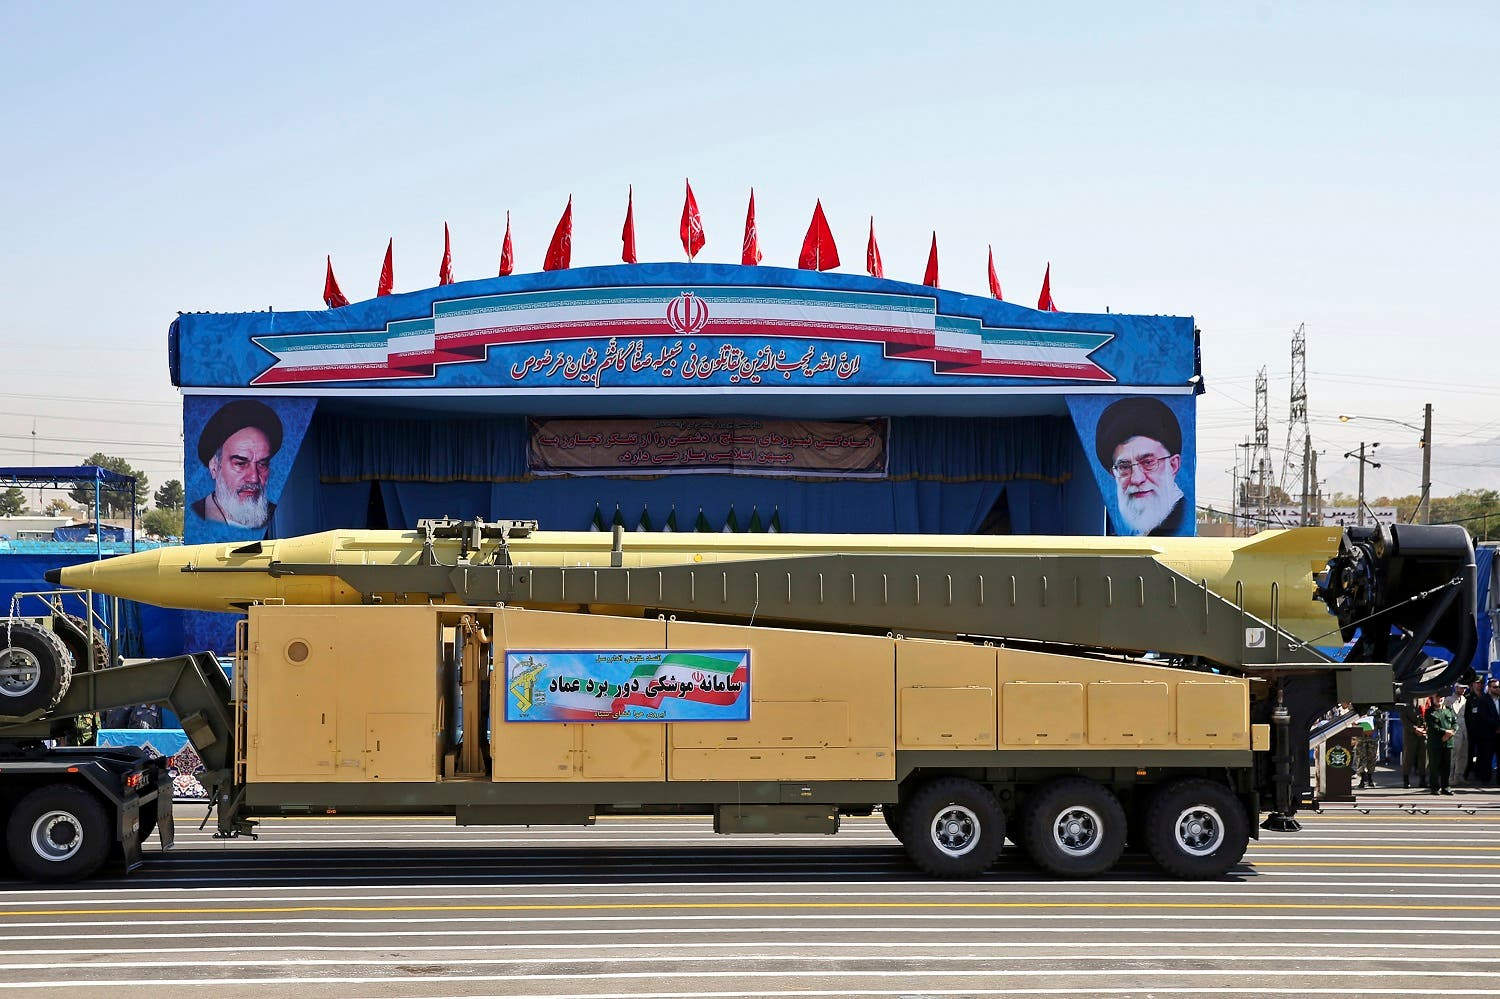 In this Sept. 21, 2016 file photo, an Emad long-range ballistic surface-to-surface missile is displayed by the Revolutionary Guard during a military parade, in front of the shrine of late revolutionary founder Ayatollah Khomeini, just outside Tehran, Iran. (AP)